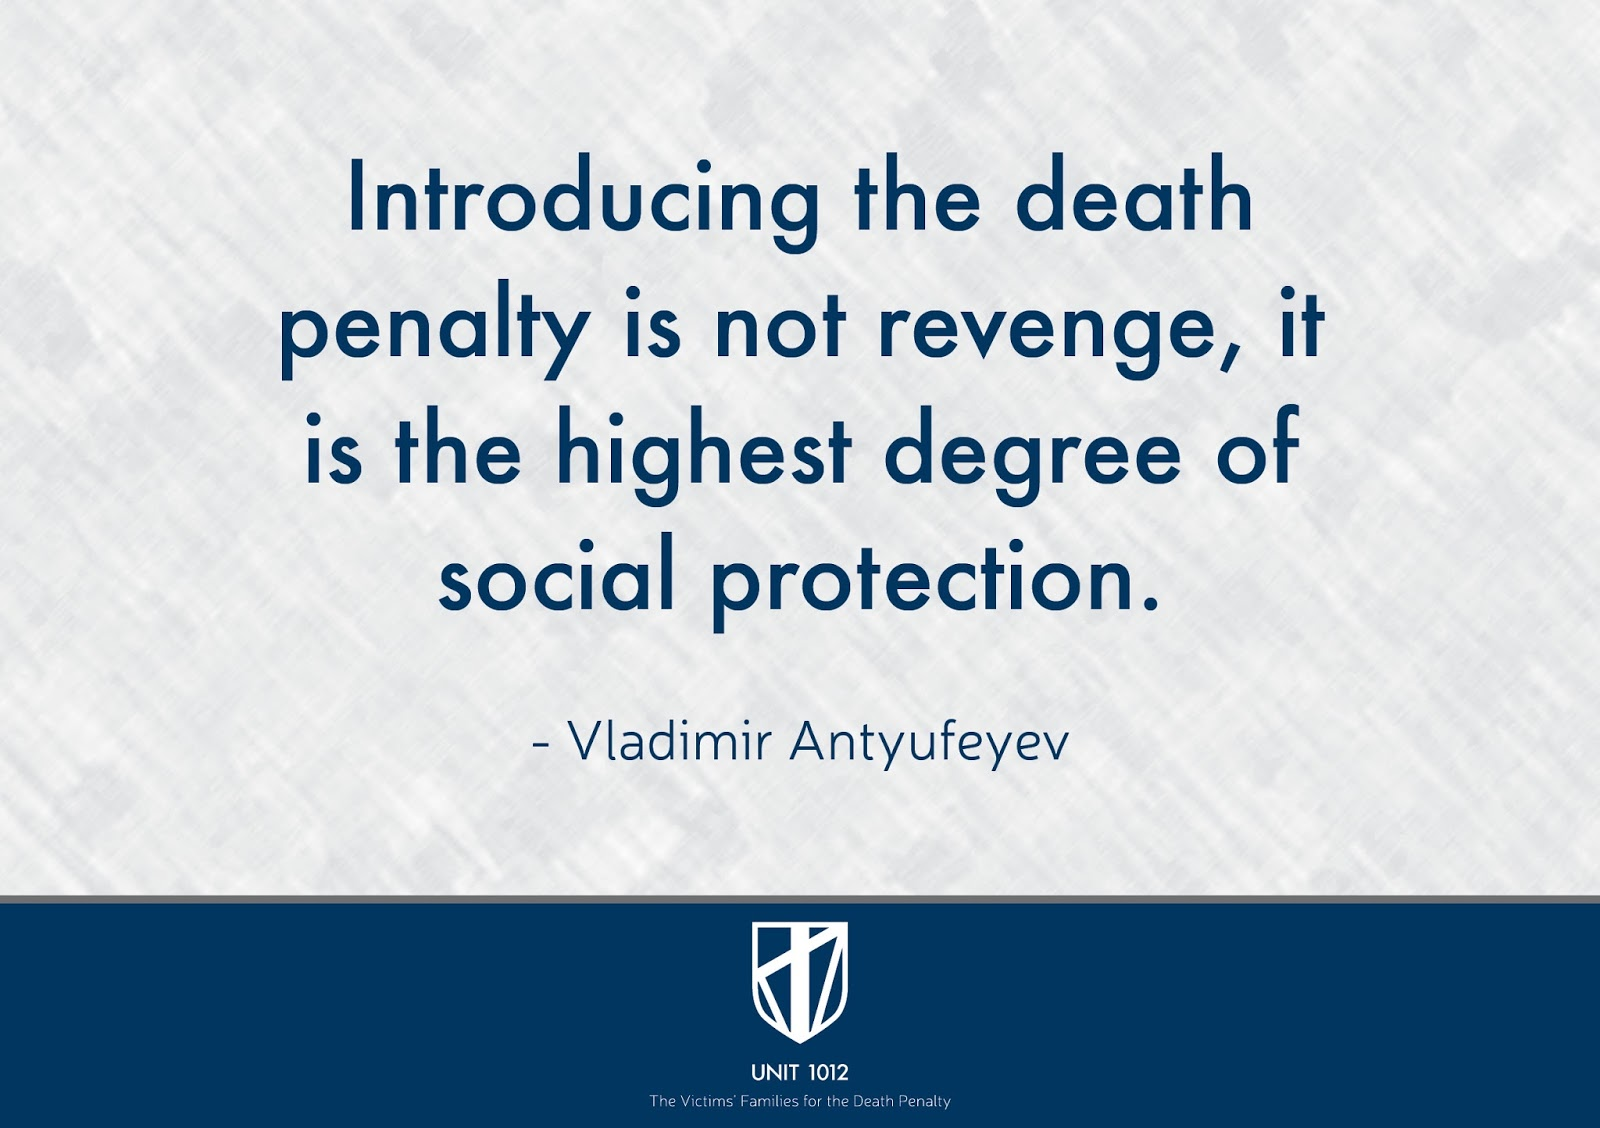 persuasive essay for the death penalty Home page writing persuasive essay pro death penalty statistics prove consisted application of the death penalty deter crime no executed murdered has ever killed again for many years, criminologists have thought to believe the death penalty has no affect as deterrence to homicides.